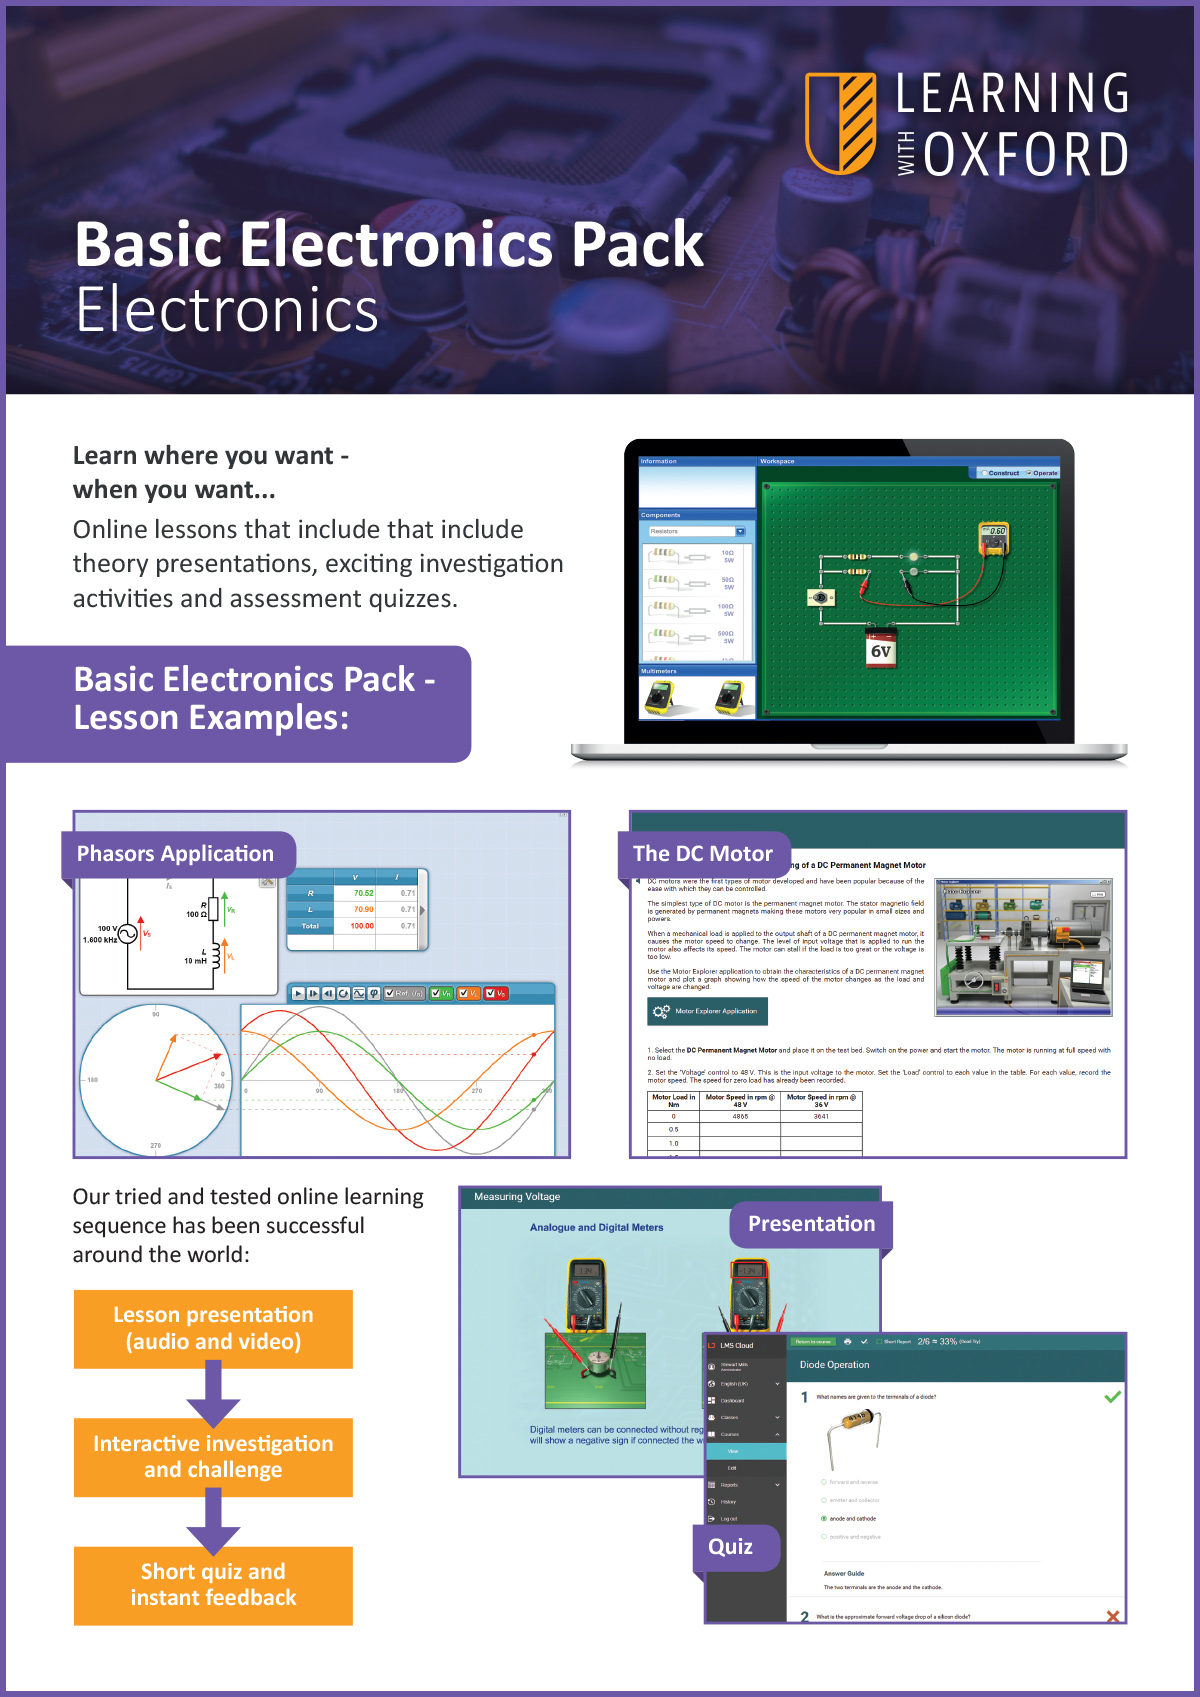 What lesson topics are covered with the licence? - Take a look at our Basic Electronics InfoSheet to see a full topic listing.